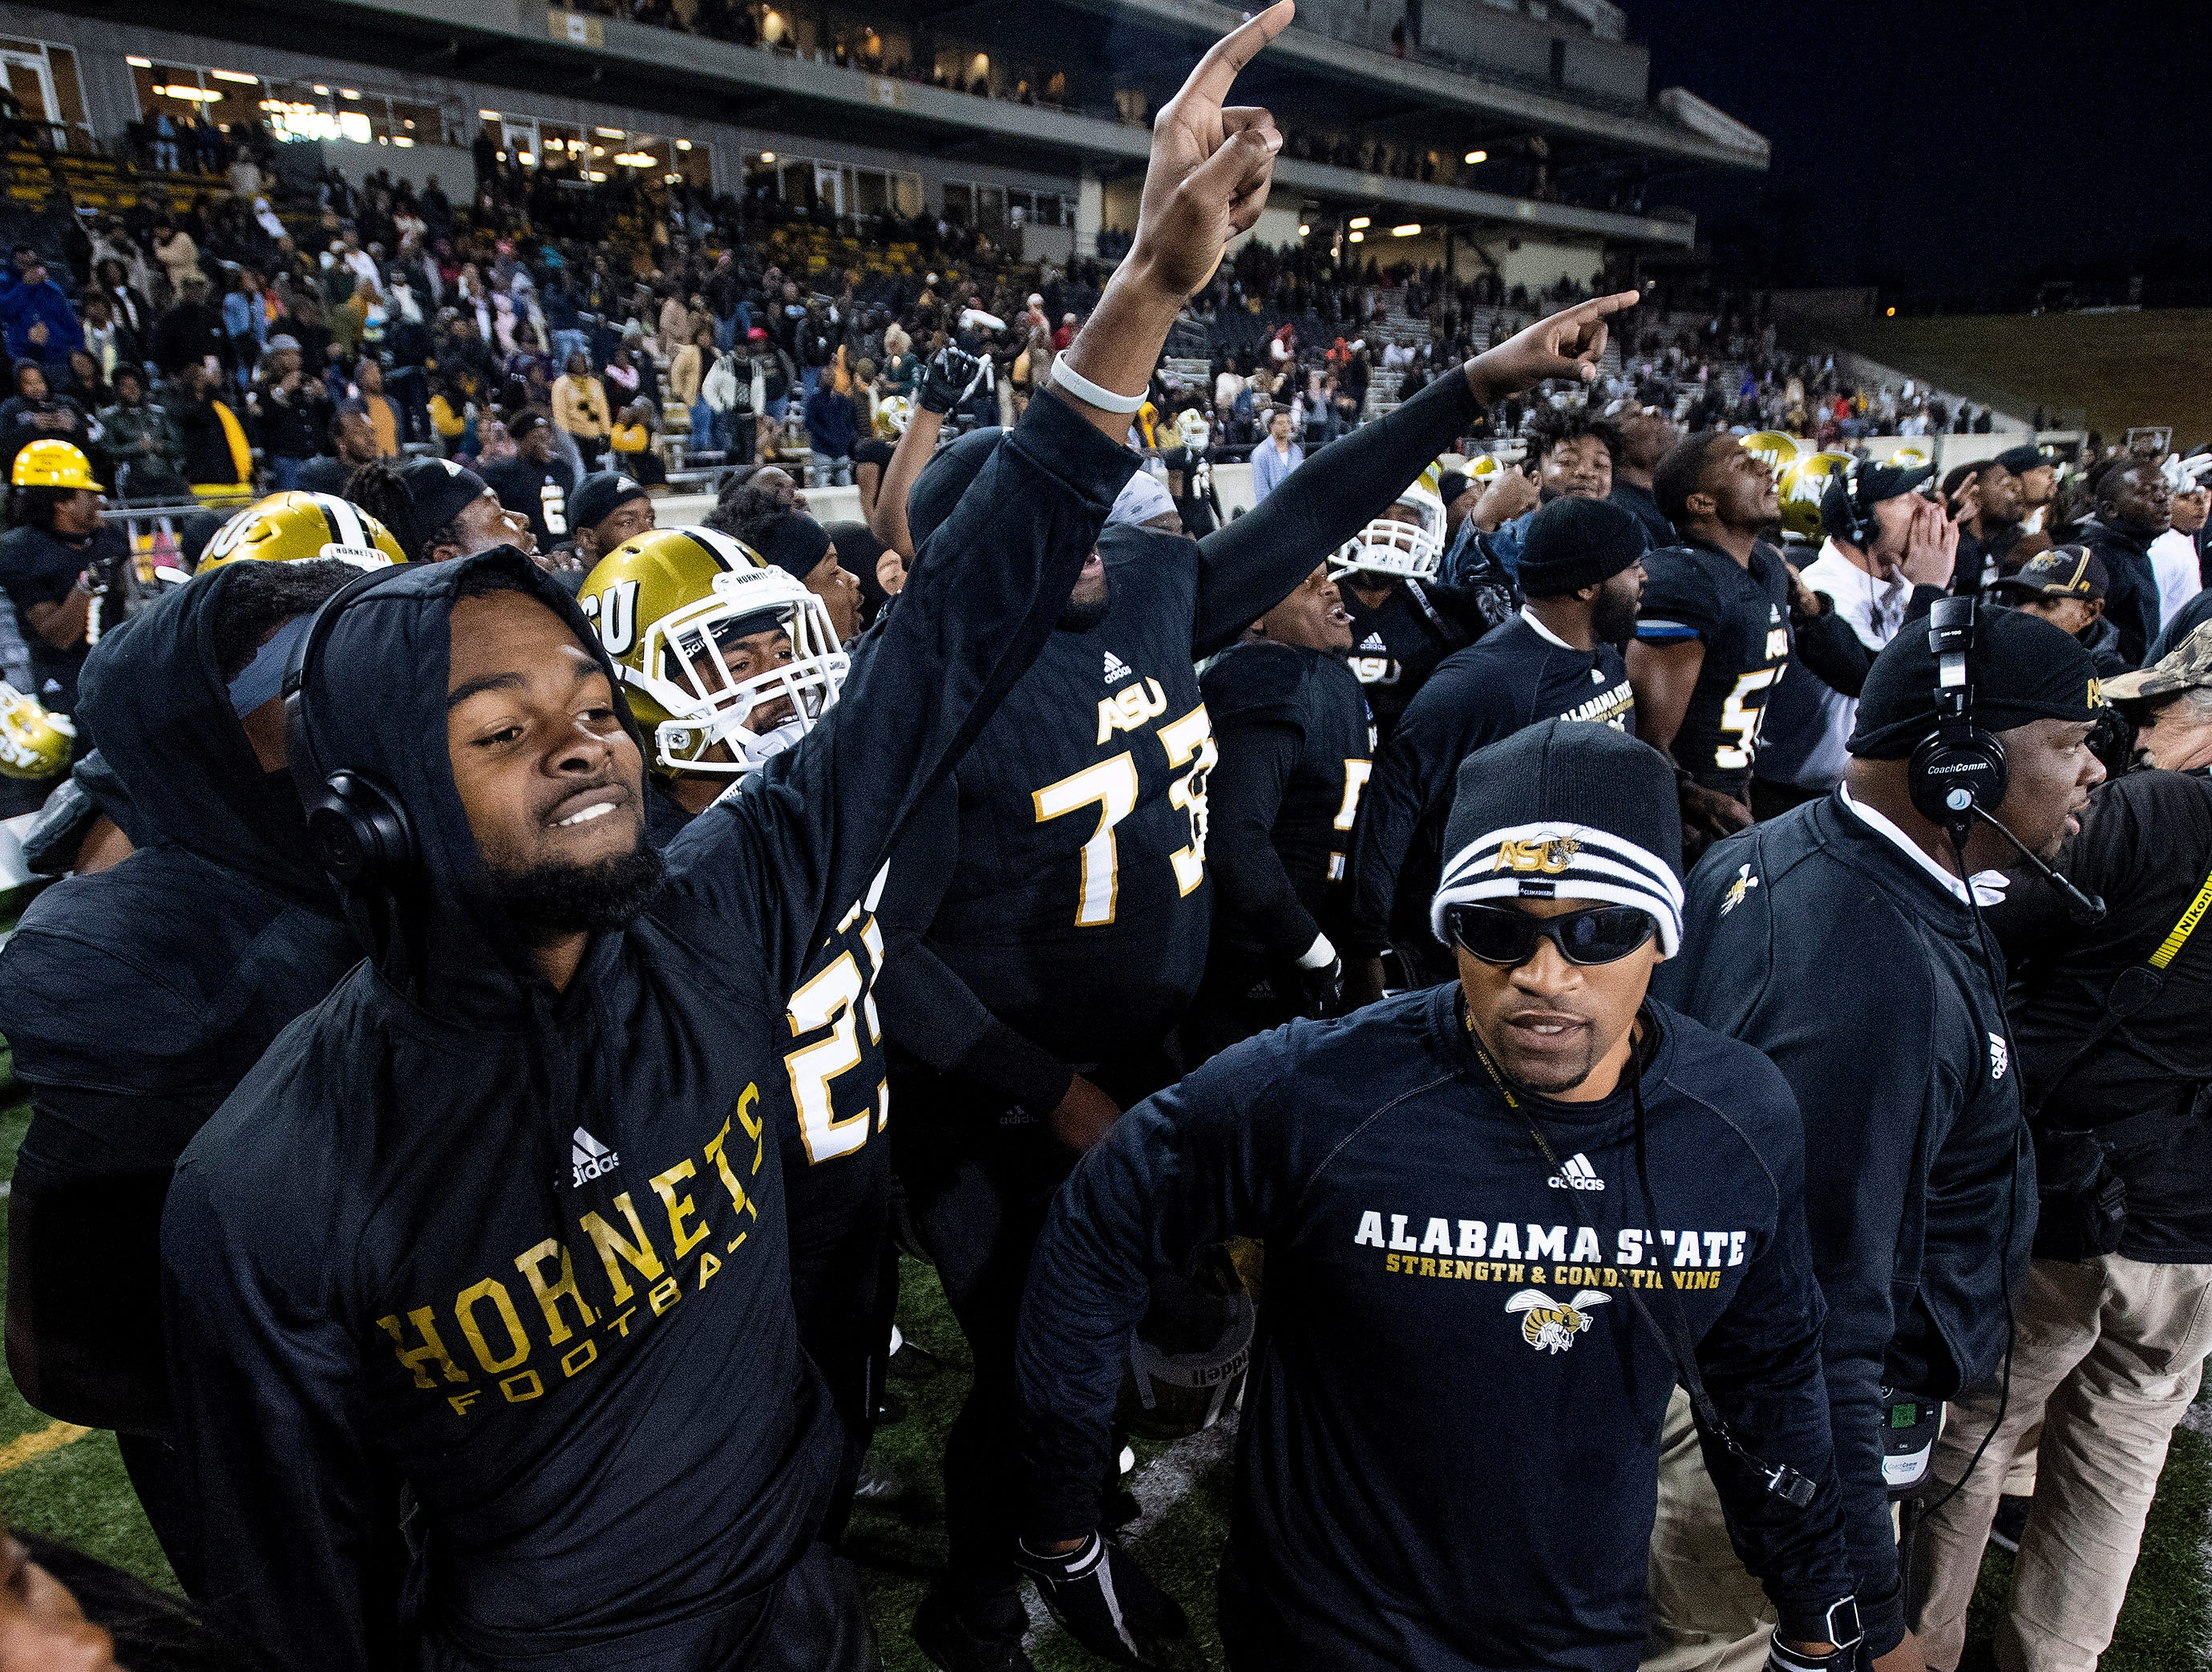 Alabama State University players and staff c celebrate as the clock runs out against Mississippi Valley State in the Turkey Day Classic at Hornet Stadium on the ASU campus in Montgomery, Ala., on Thanksgiving Day, Thursday November 22, 2018.